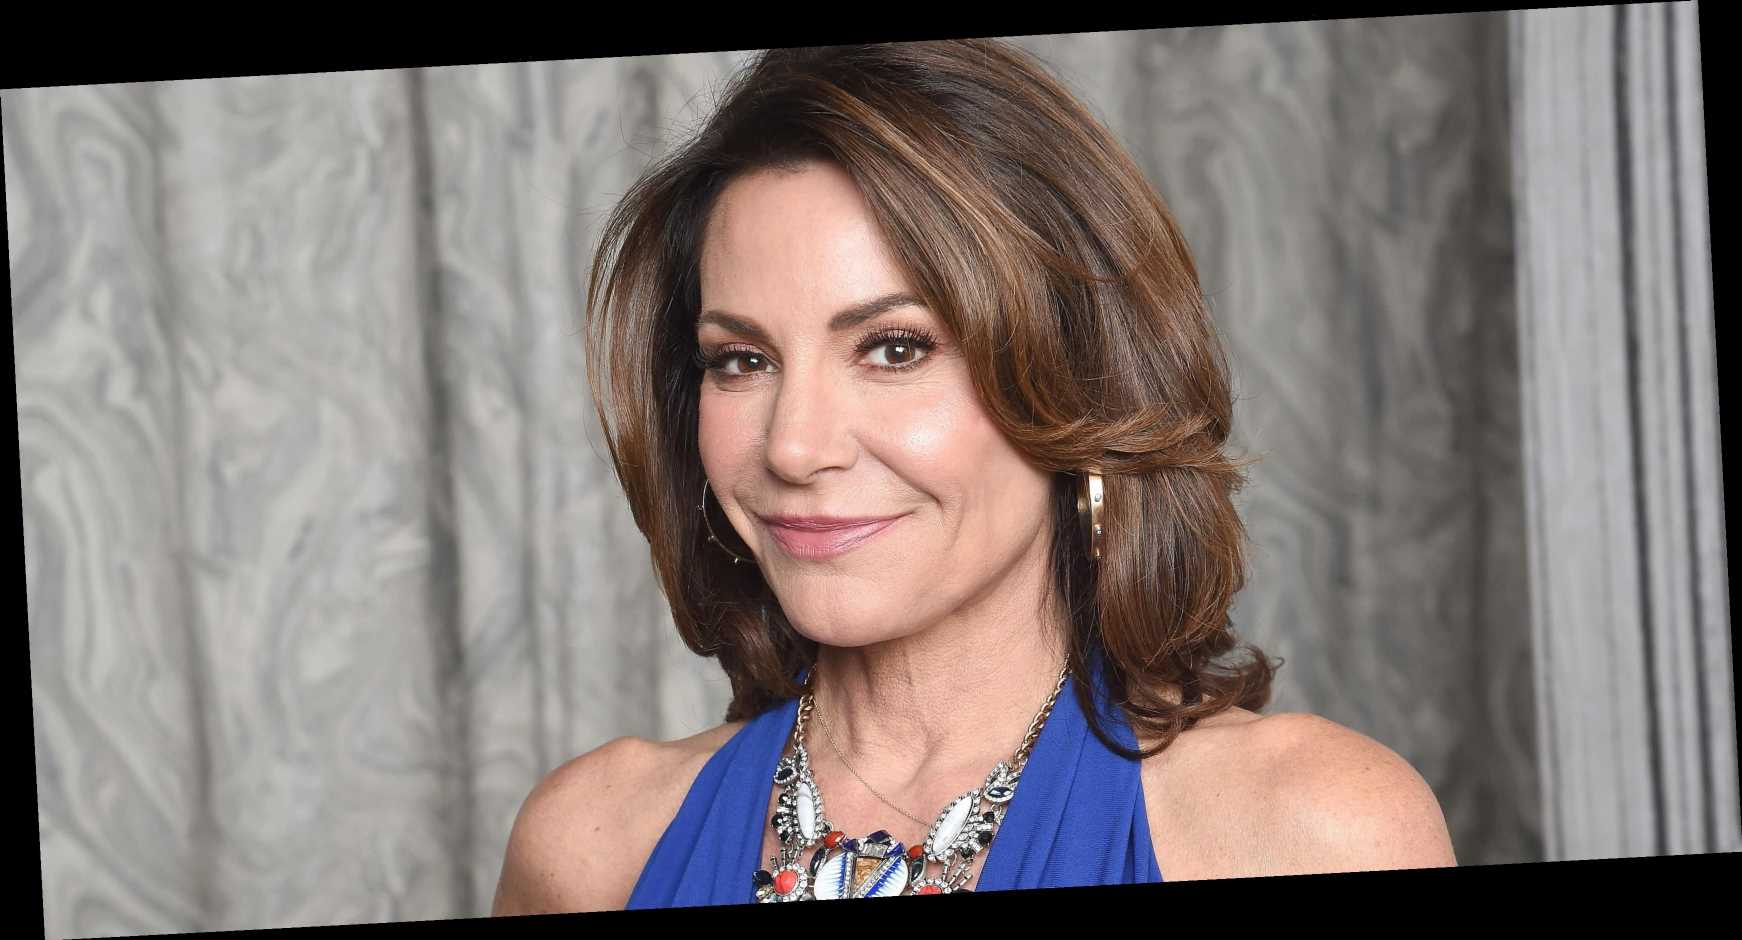 Luann de Lesseps Is A Multimillionaire And Not Just Because Of 'Housewives'